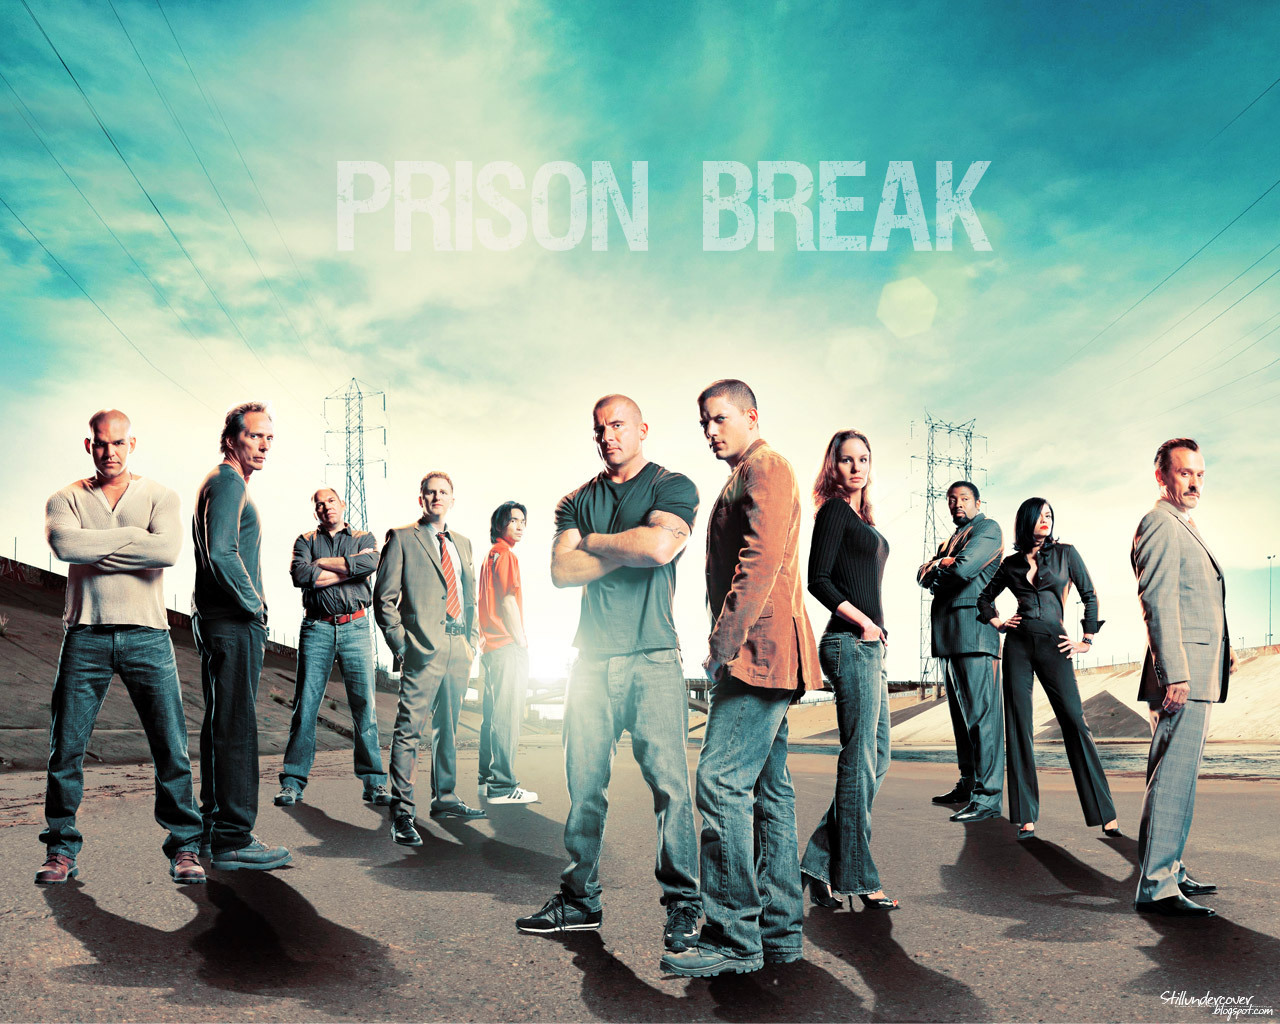 ¡Mira! Ahí hay lecciones de marketing: Prison Break